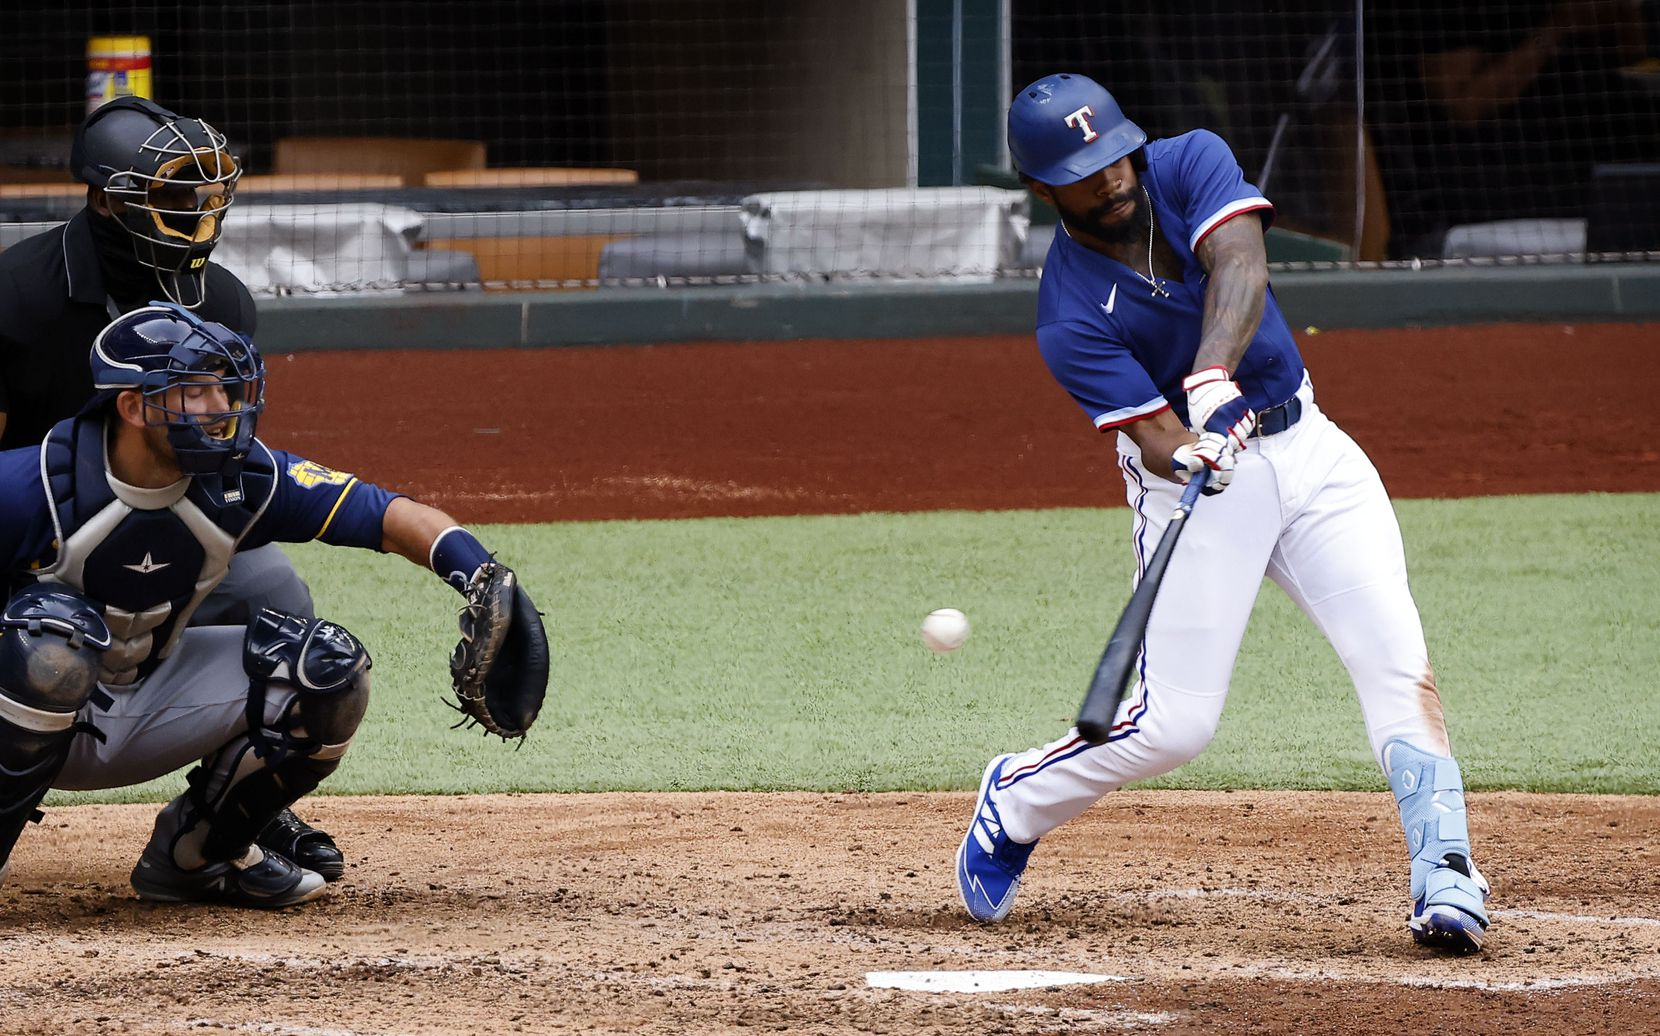 Texas Rangers batter Delino DeShields swings and misses, striking out against the Milwaukee Brewers to end the seventh inning at Globe Life Field in Arlington, Texas. The teams were playing in an exhibition game, Tuesday, March 30, 2021. (Tom Fox/The Dallas Morning News)